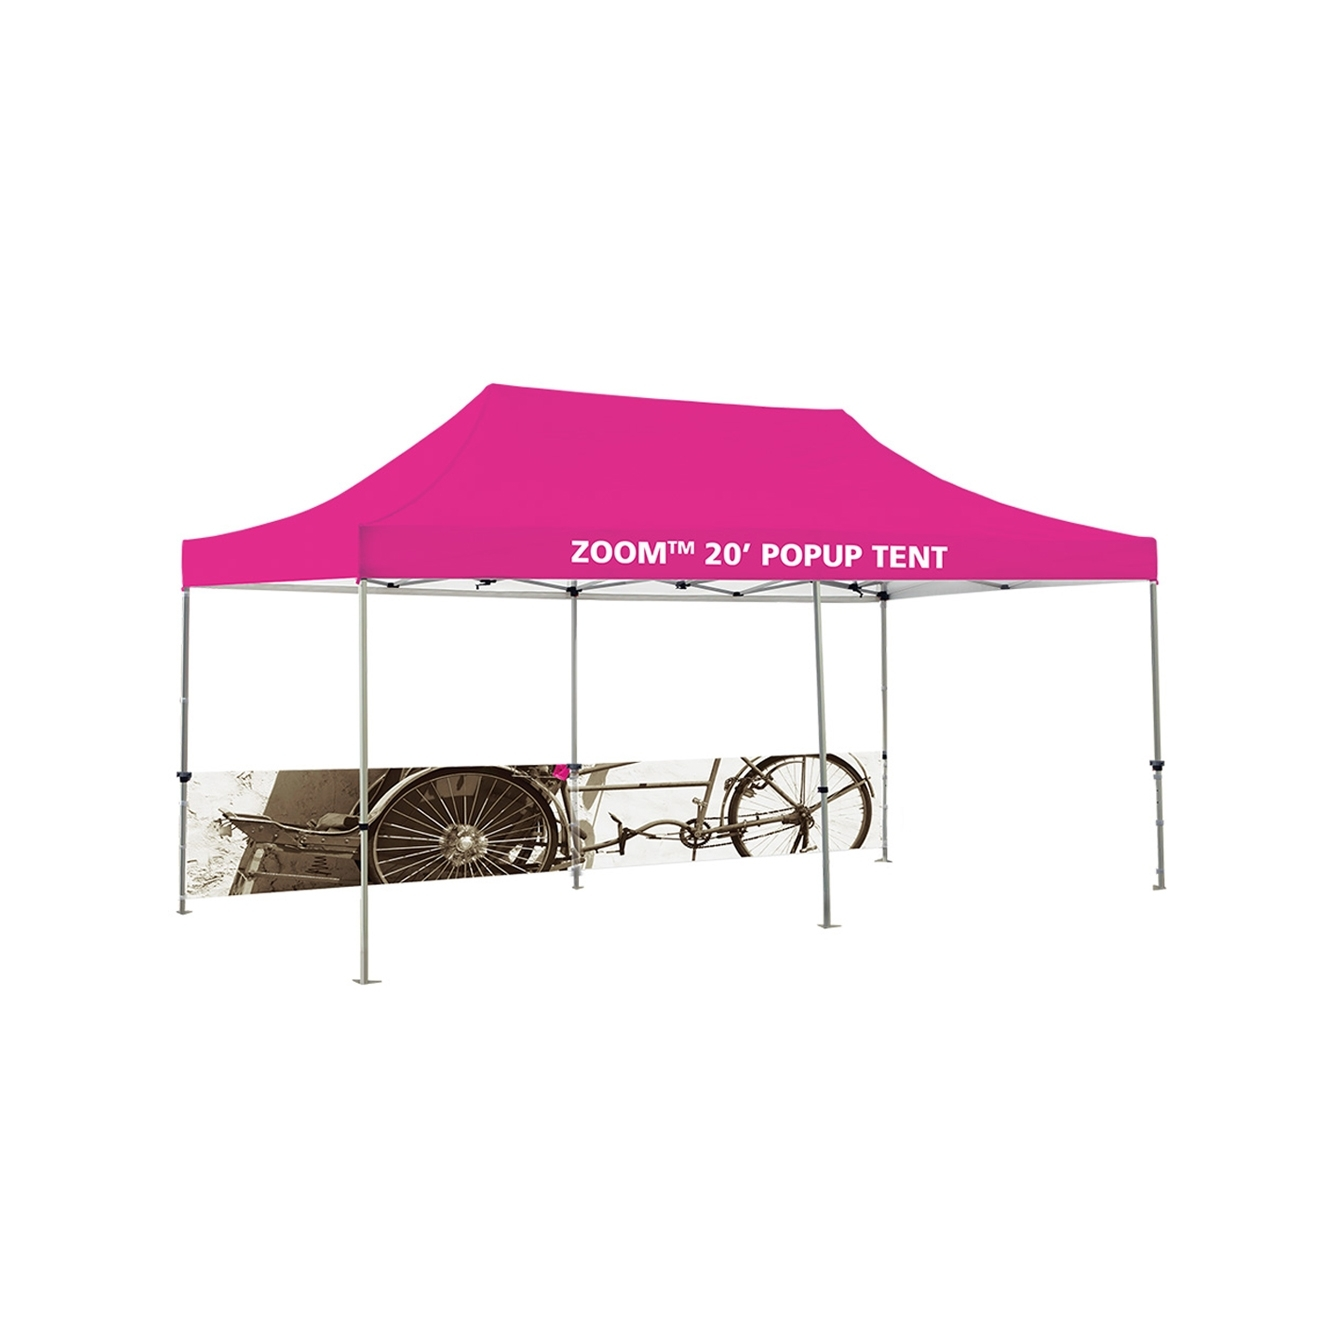 20' Popup Tent - Half Wall Only